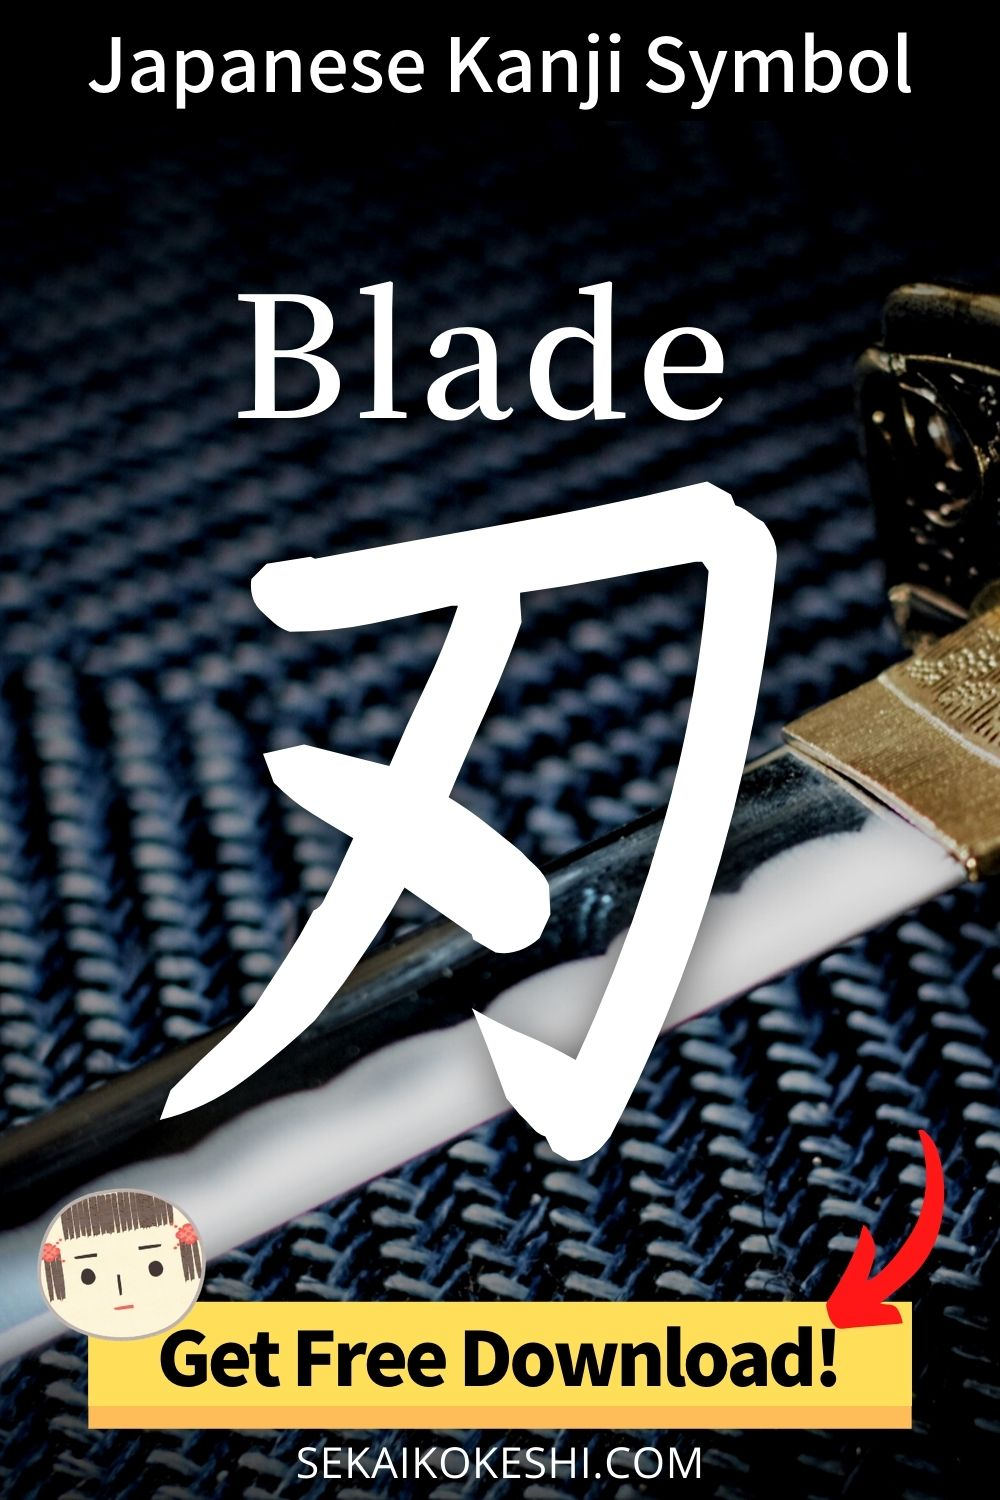 japanese kanji symbol, blade, get free download!